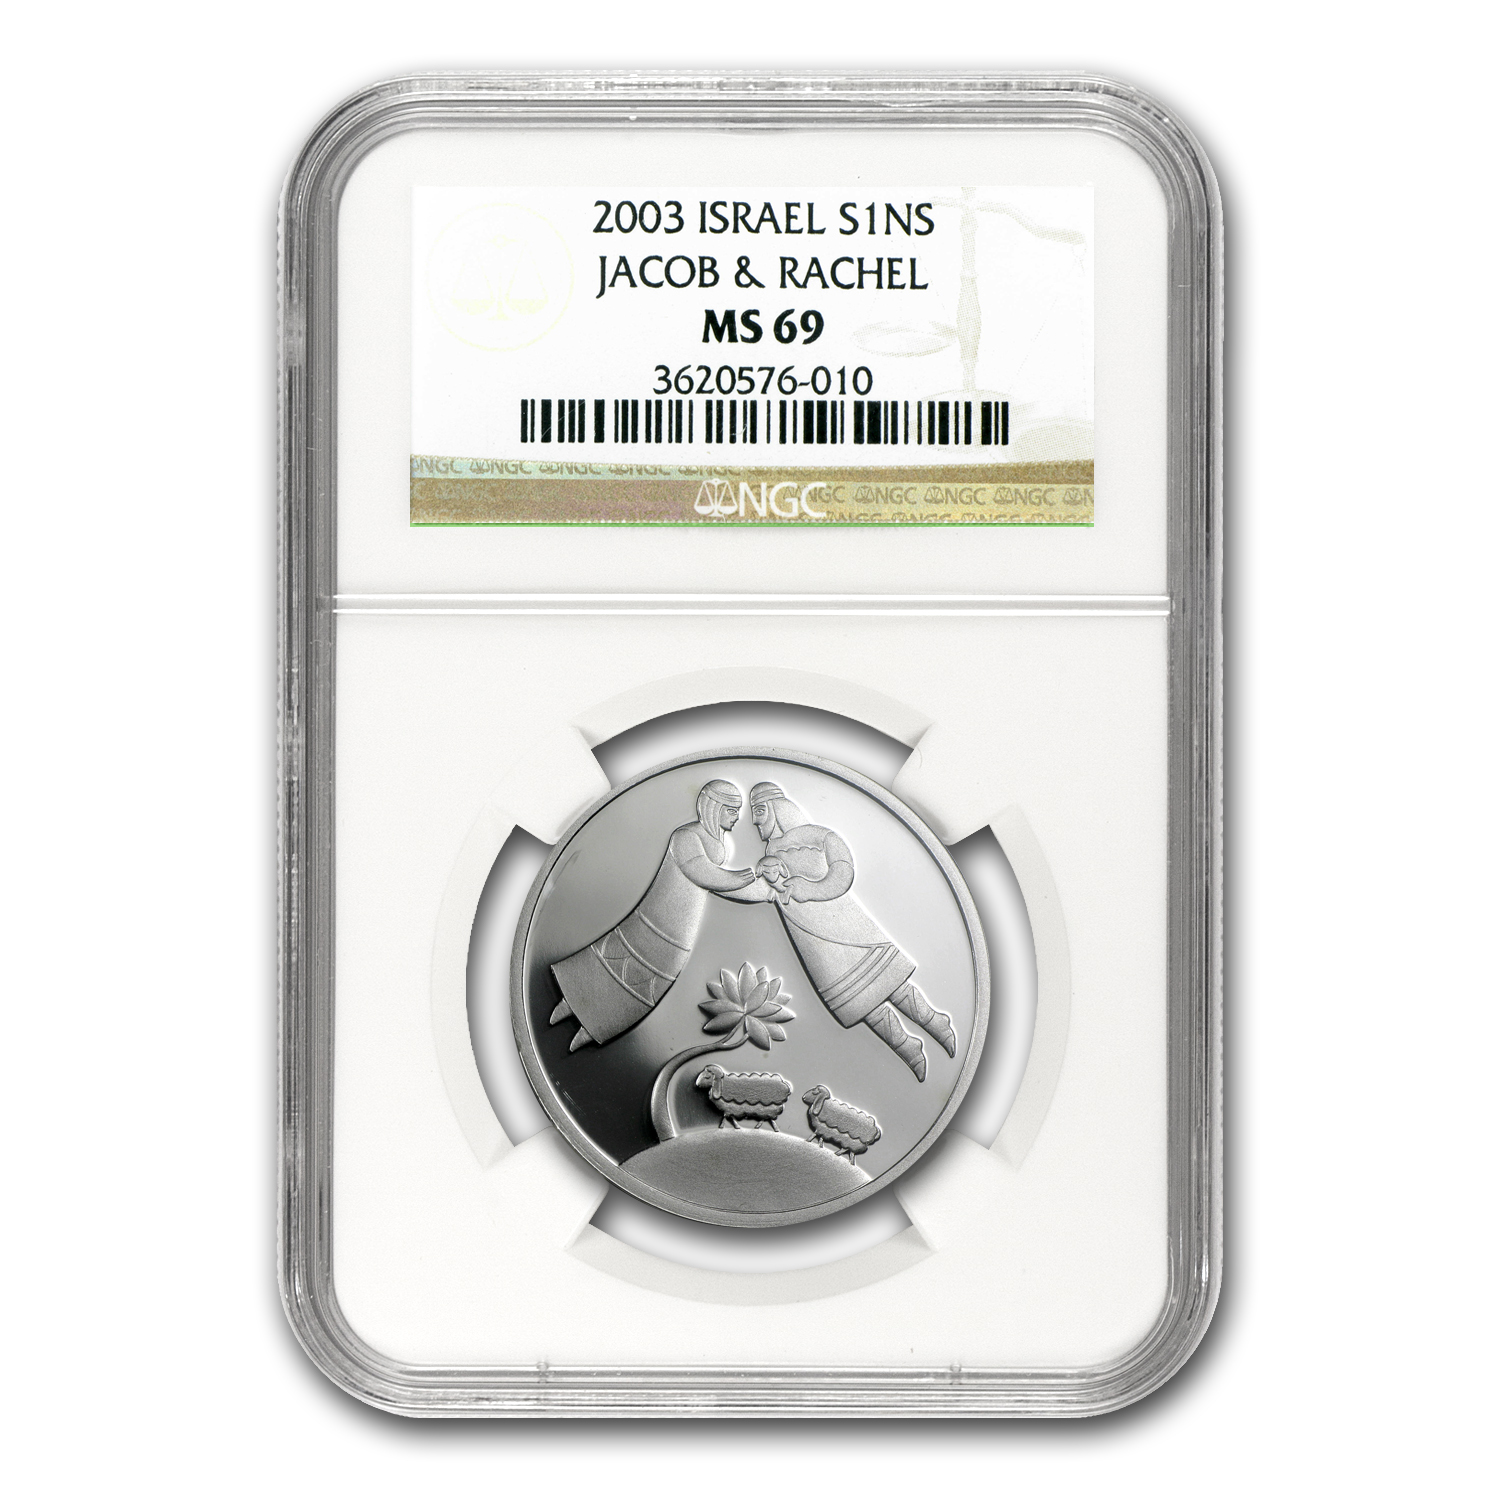 2003 Israel Jacob and Rachel Silver 1 NIS Coin MS-69 NGC